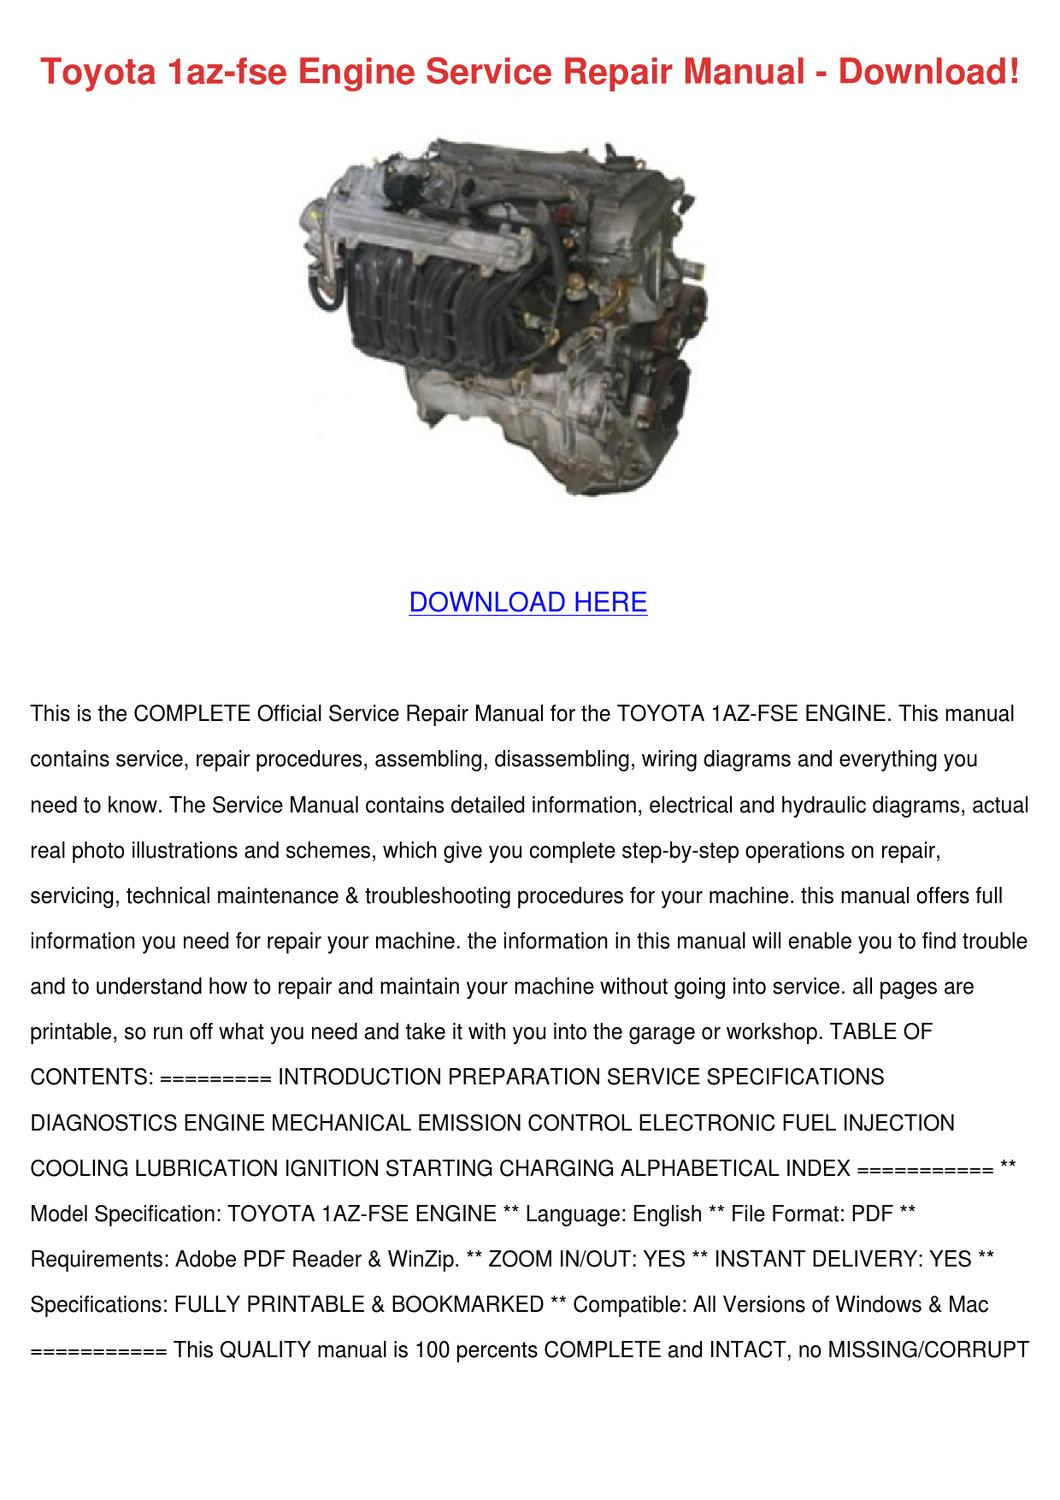 1az Fse Wiring Diagram 22 Images Diagrams Toyota Motor Page 1 Engine Service Repair Manual D By Nolaoconnor Issuu